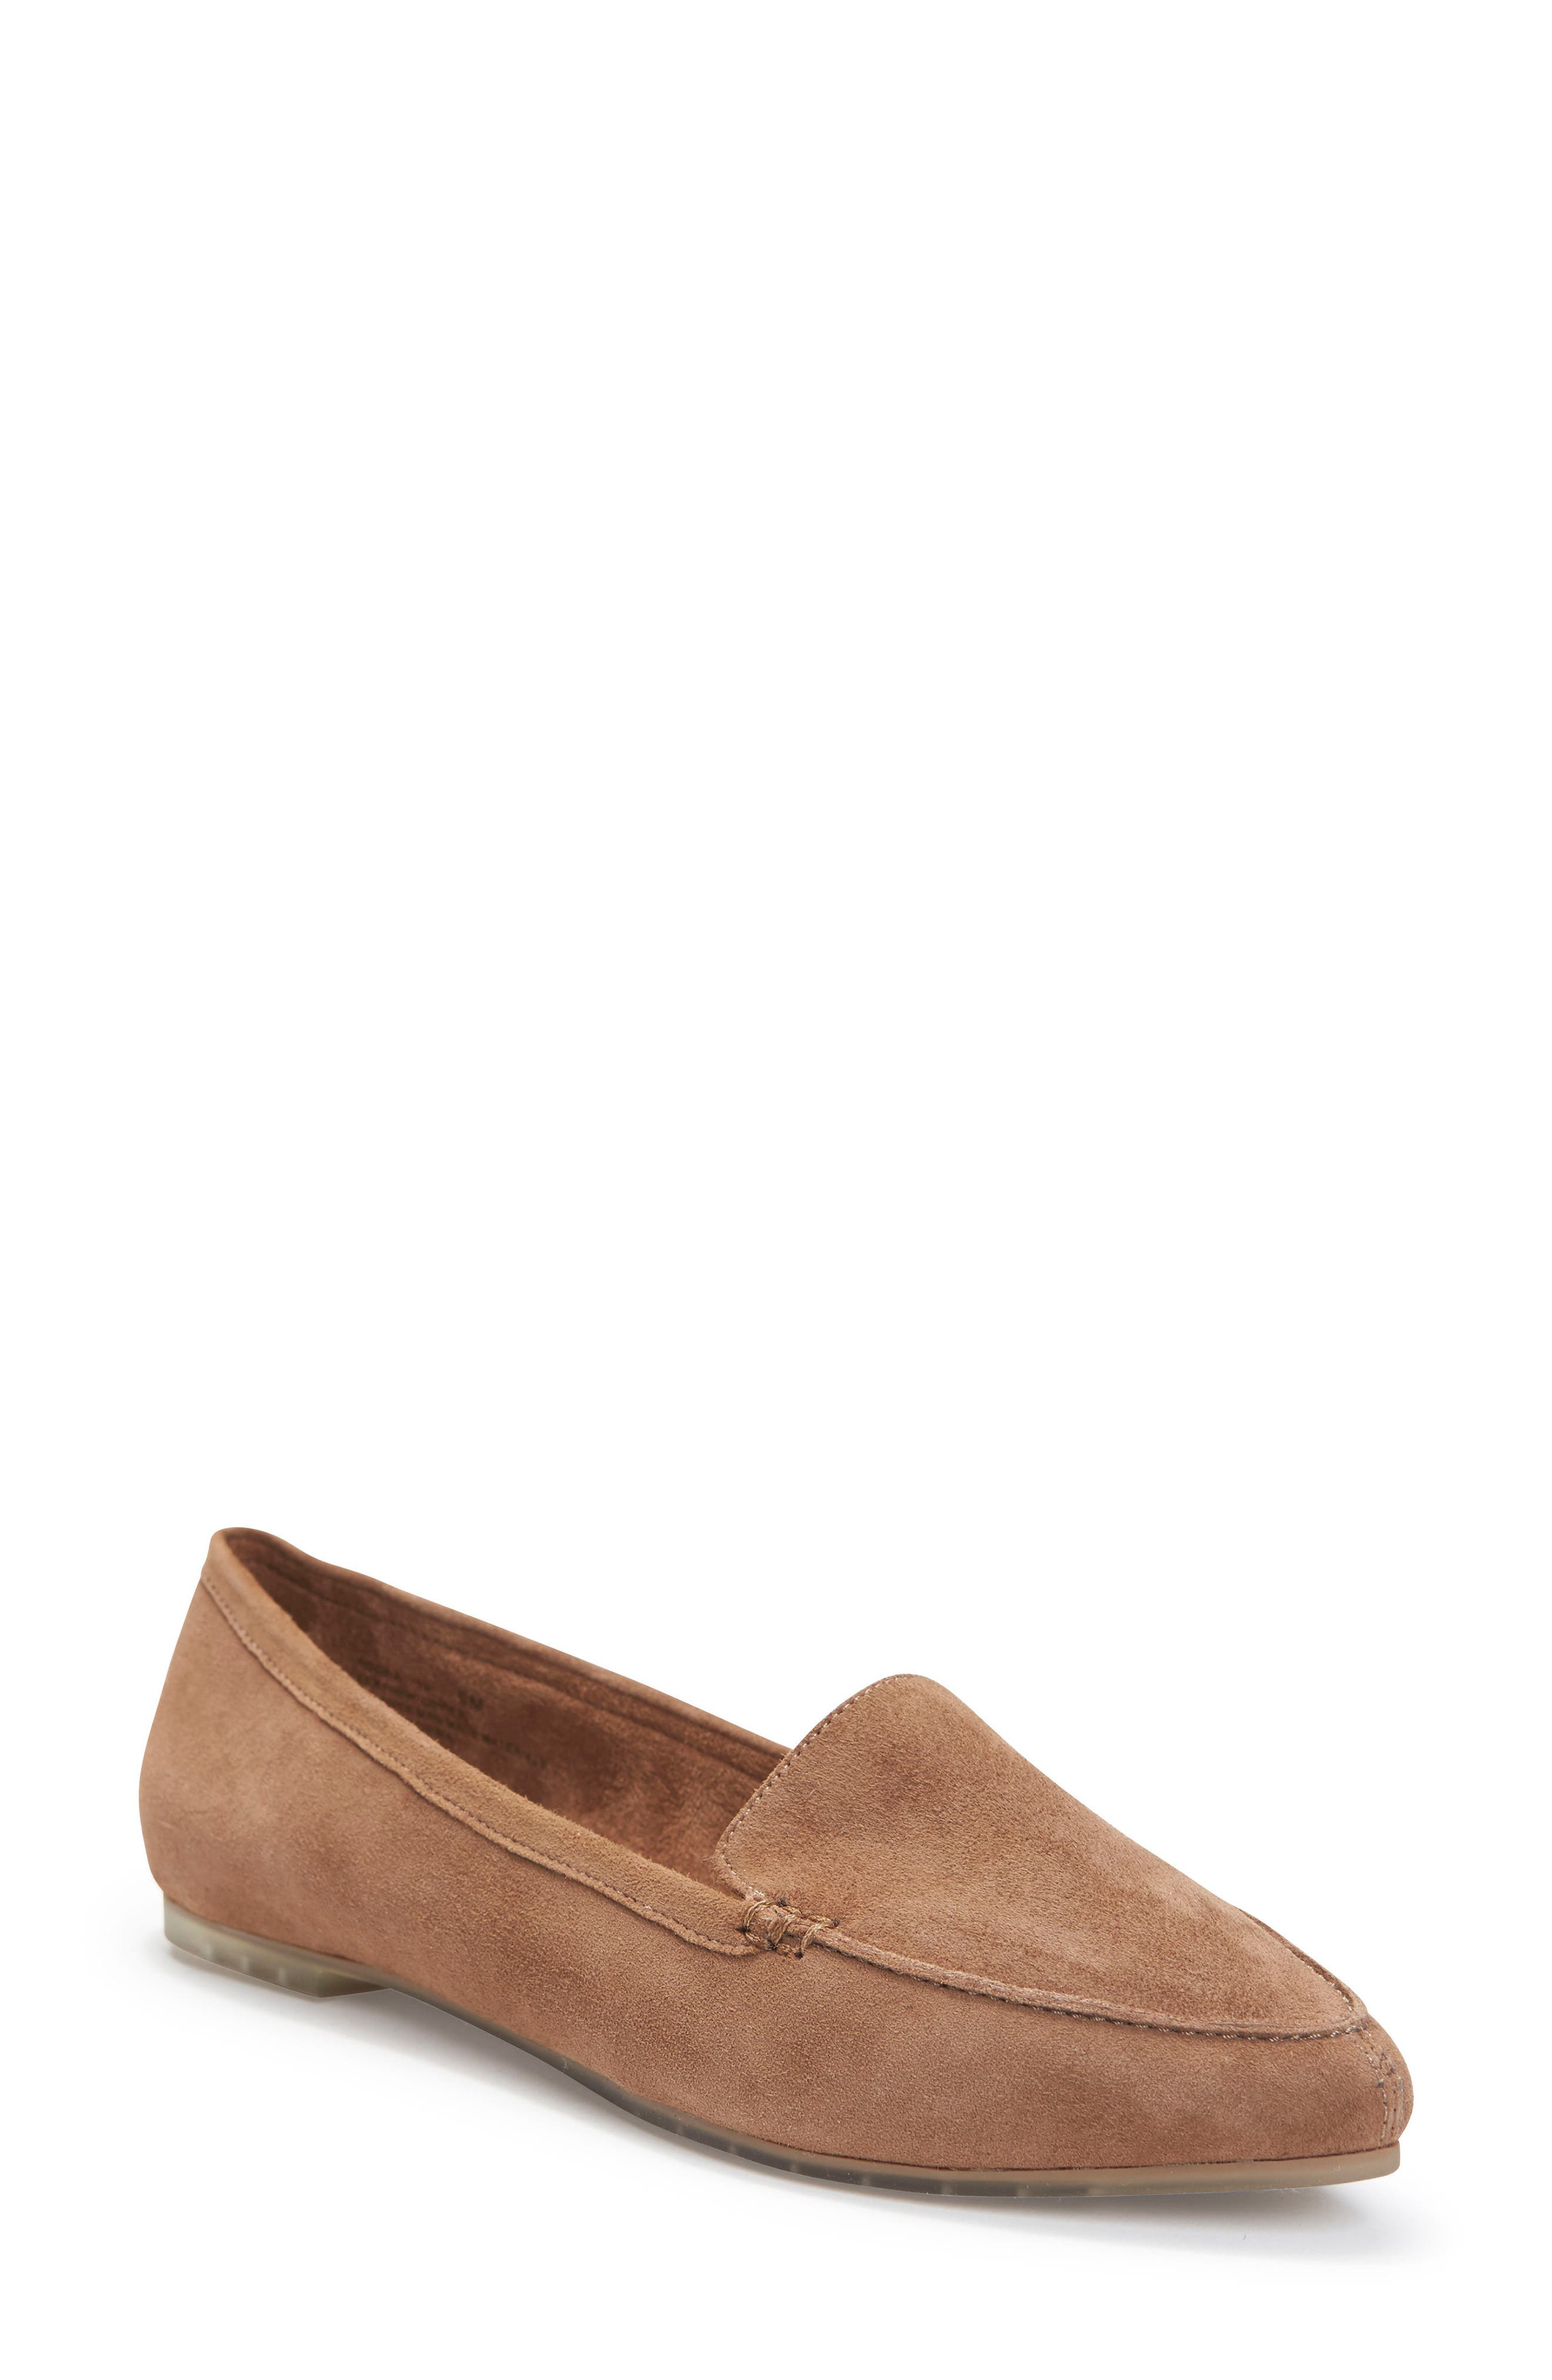 Me Too Audra Loafer Flat, Brown